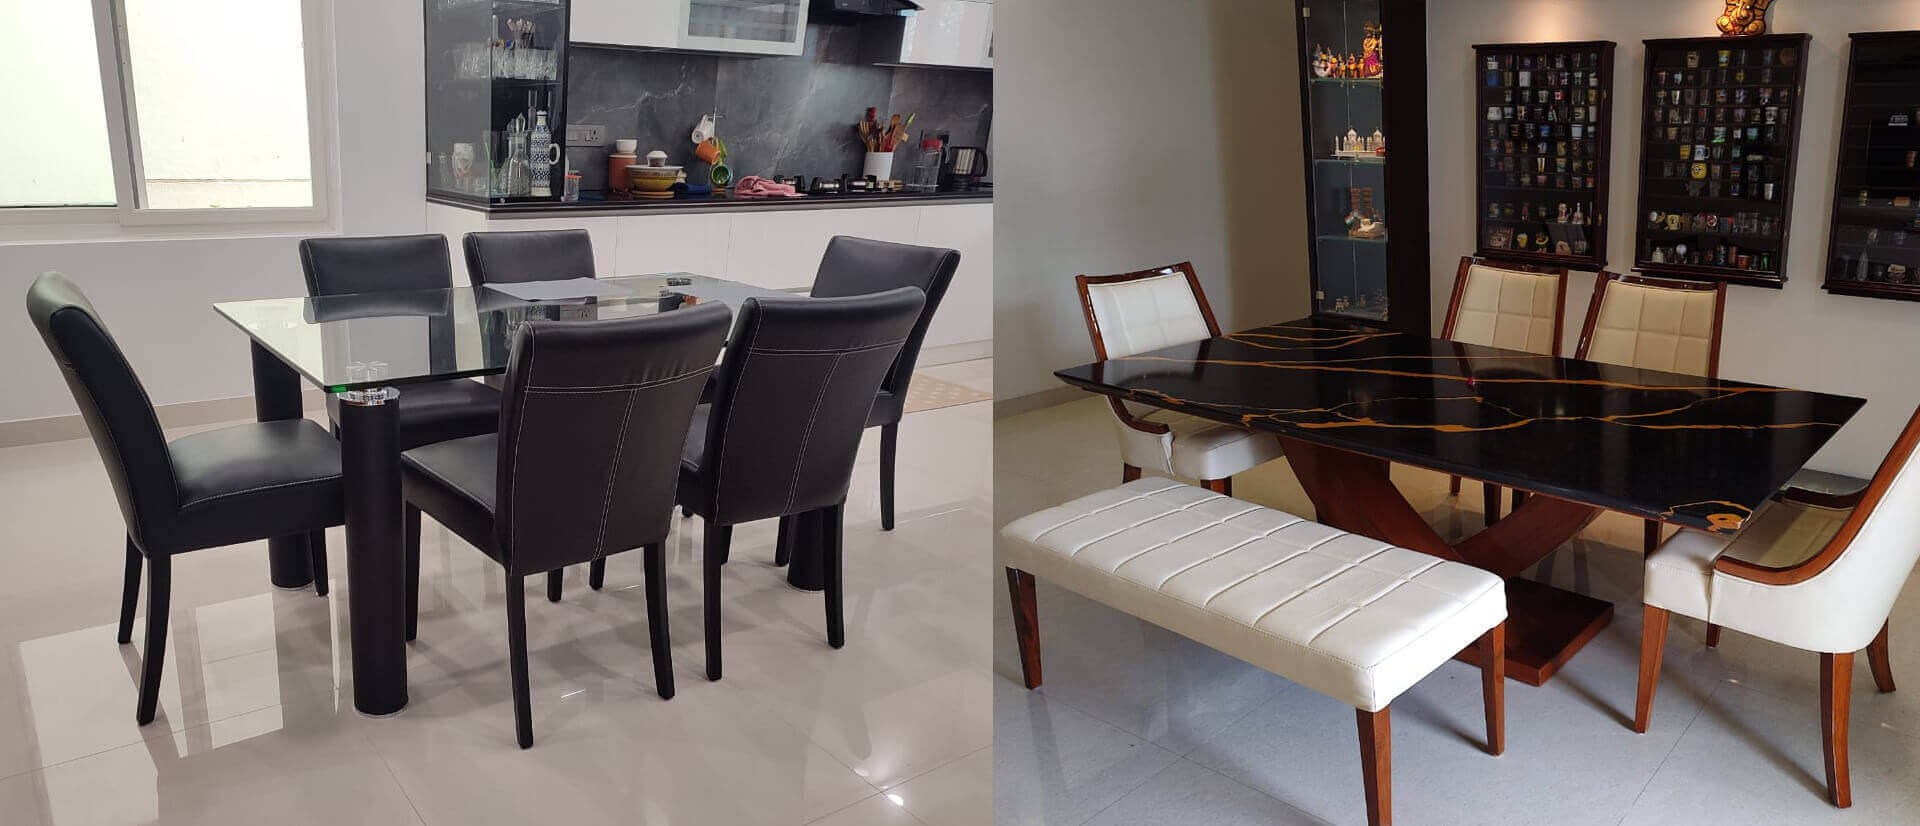 Dining Table Set Manufacturers in Bangalore